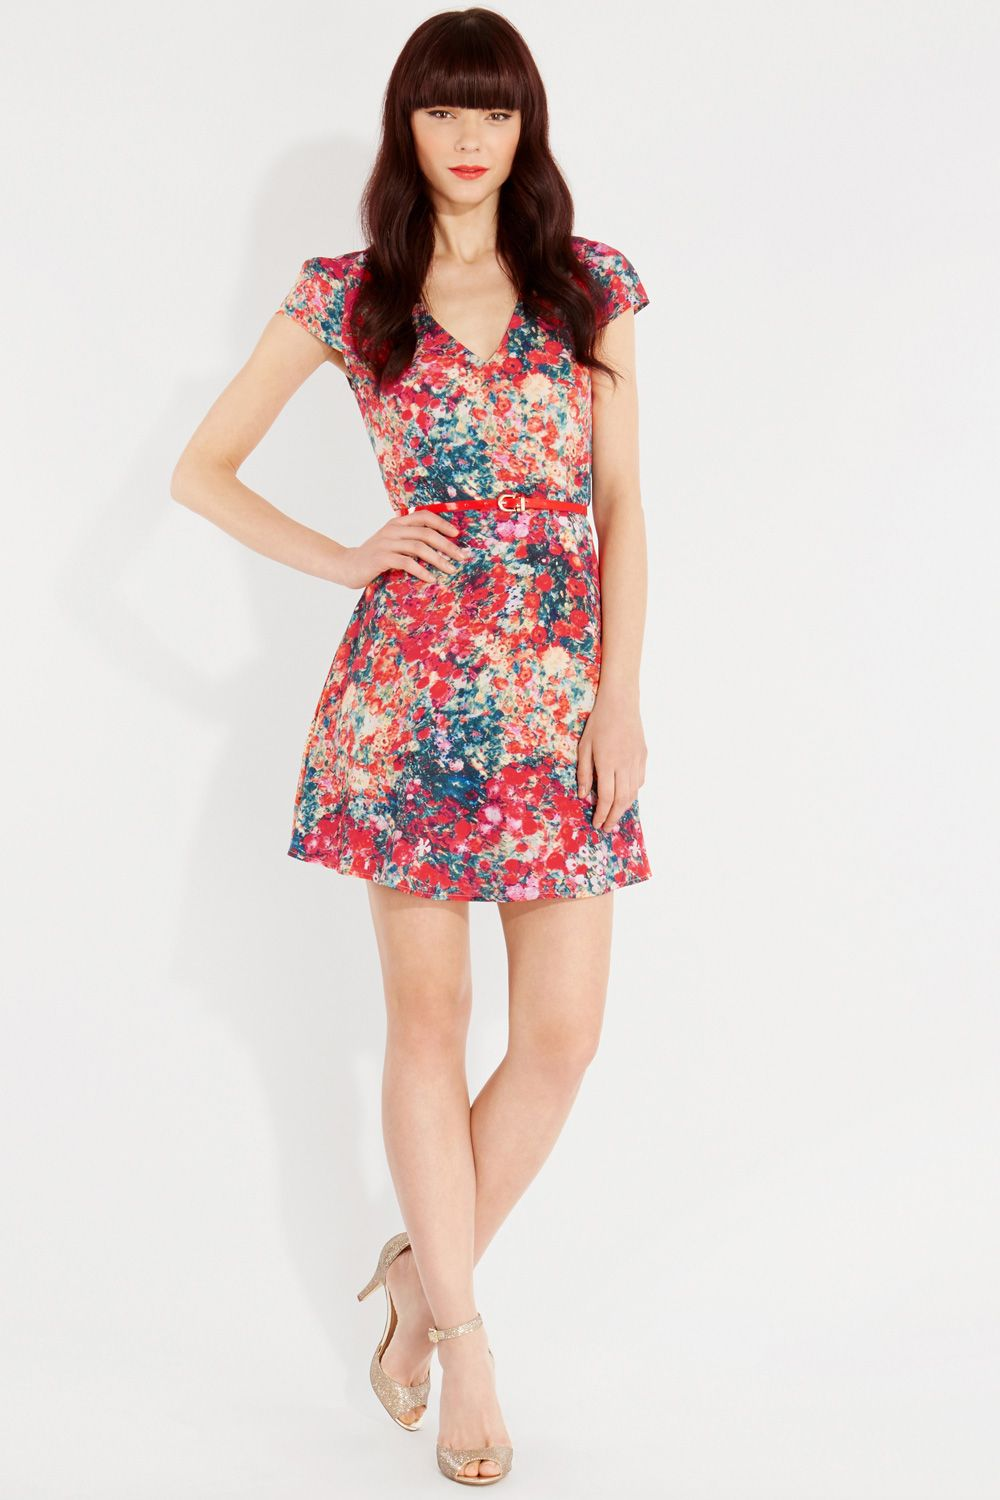 Blurred ditsy skater dress